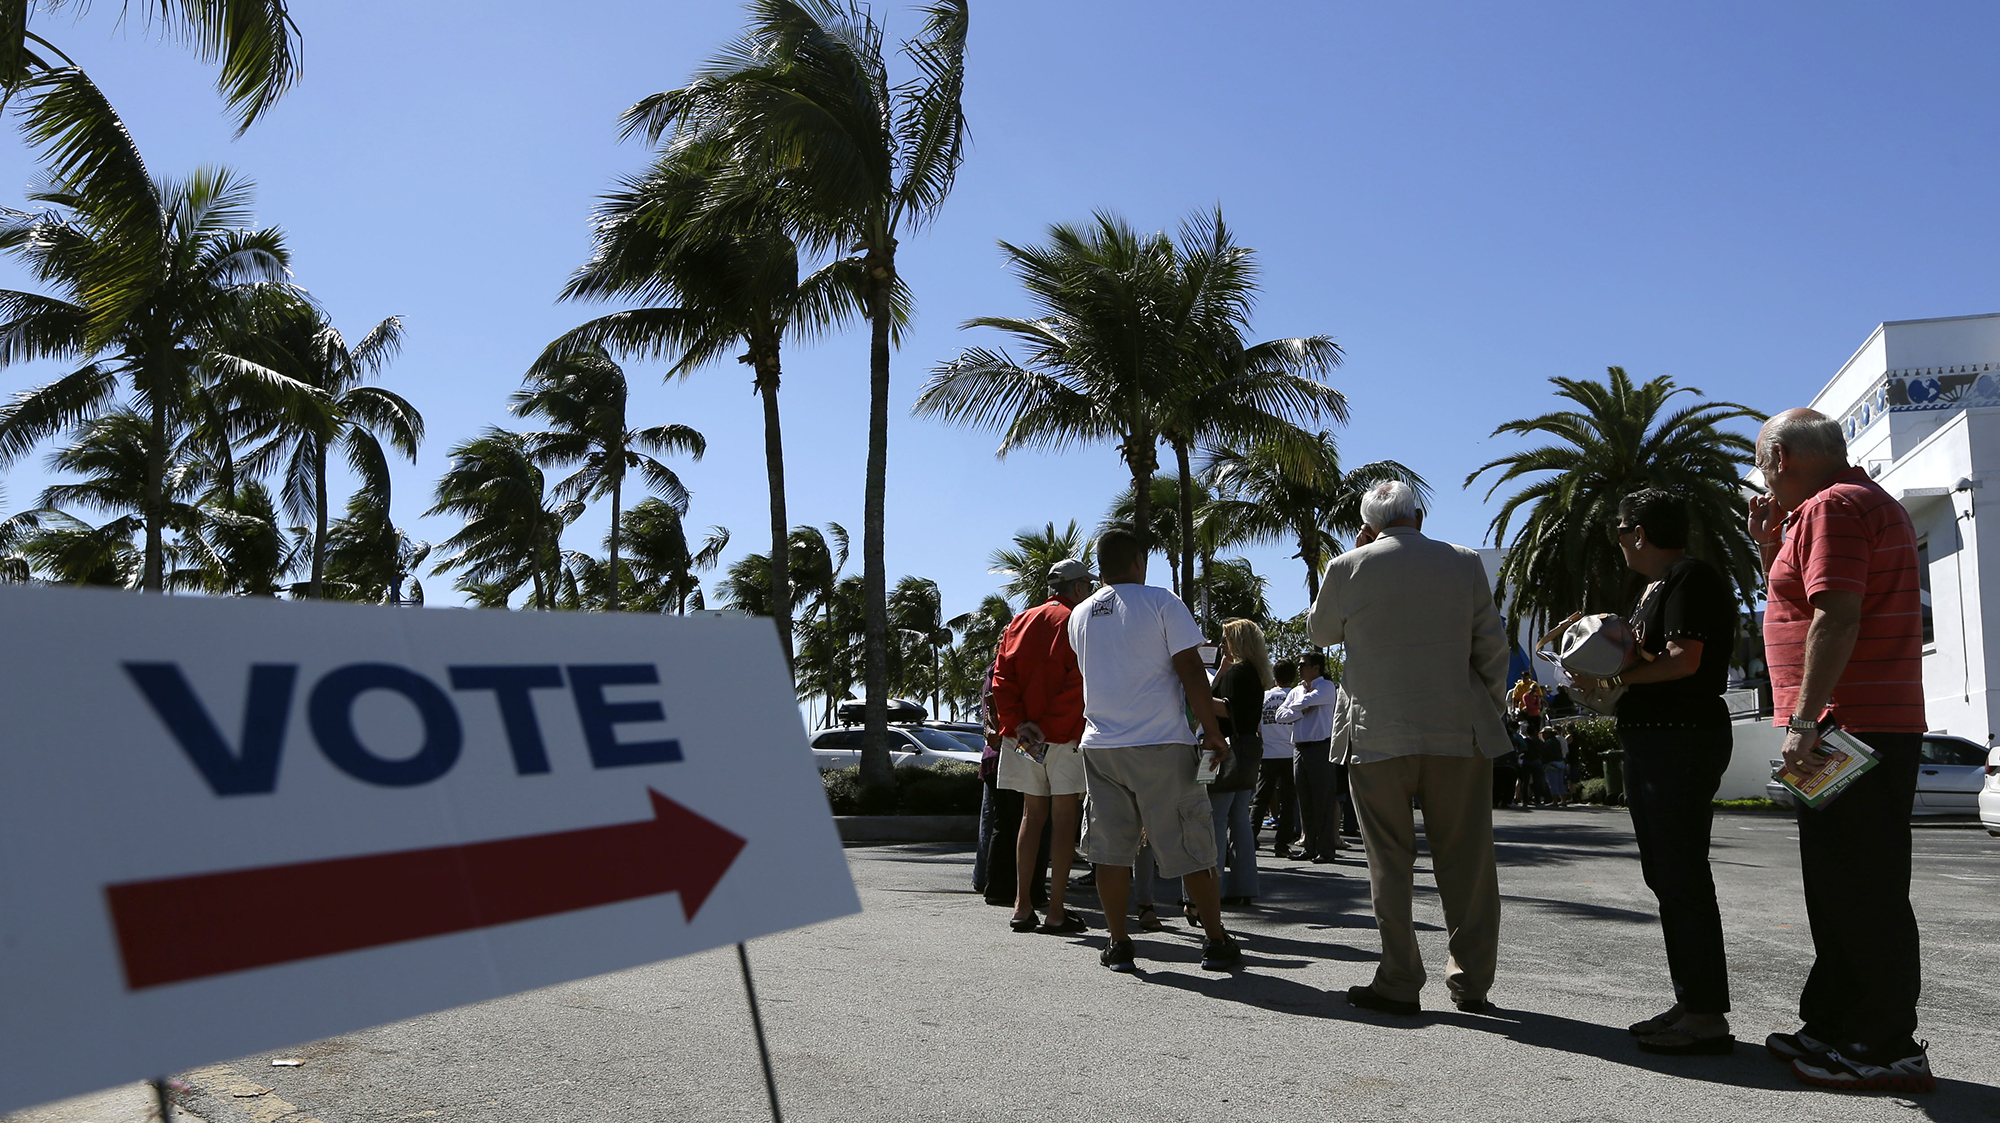 Judge Says Florida's System For Restoring Voting Rights To Felons Is Unconstitutional